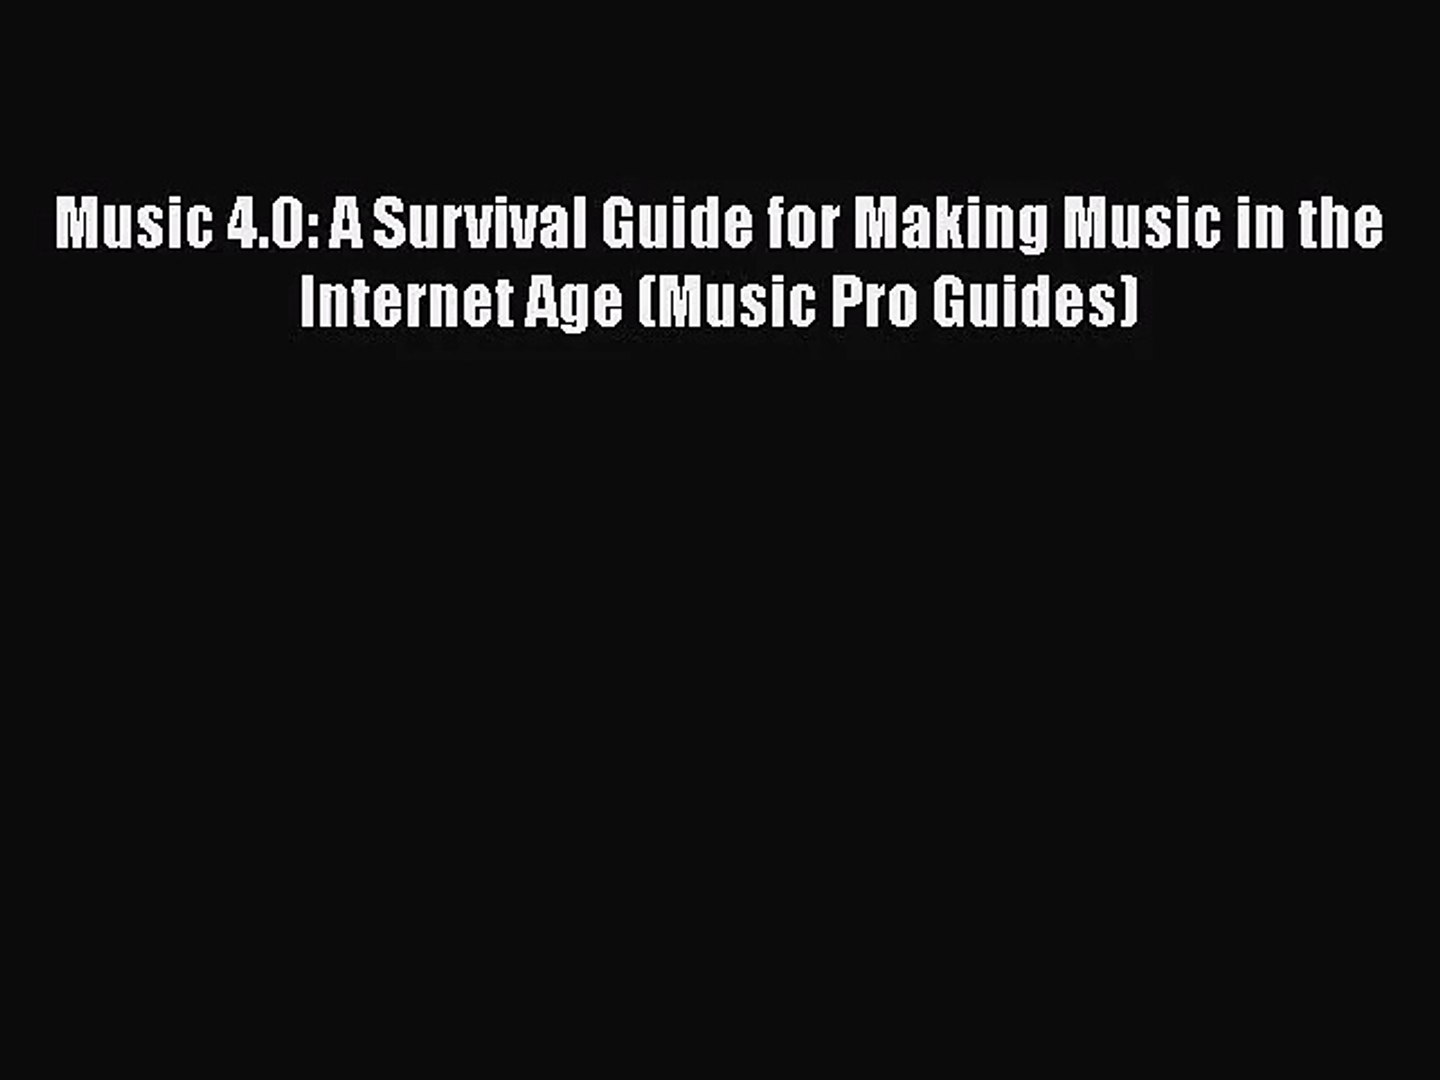 [PDF Download] Music 4.0: A Survival Guide for Making Music in the Internet Age (Music Pro